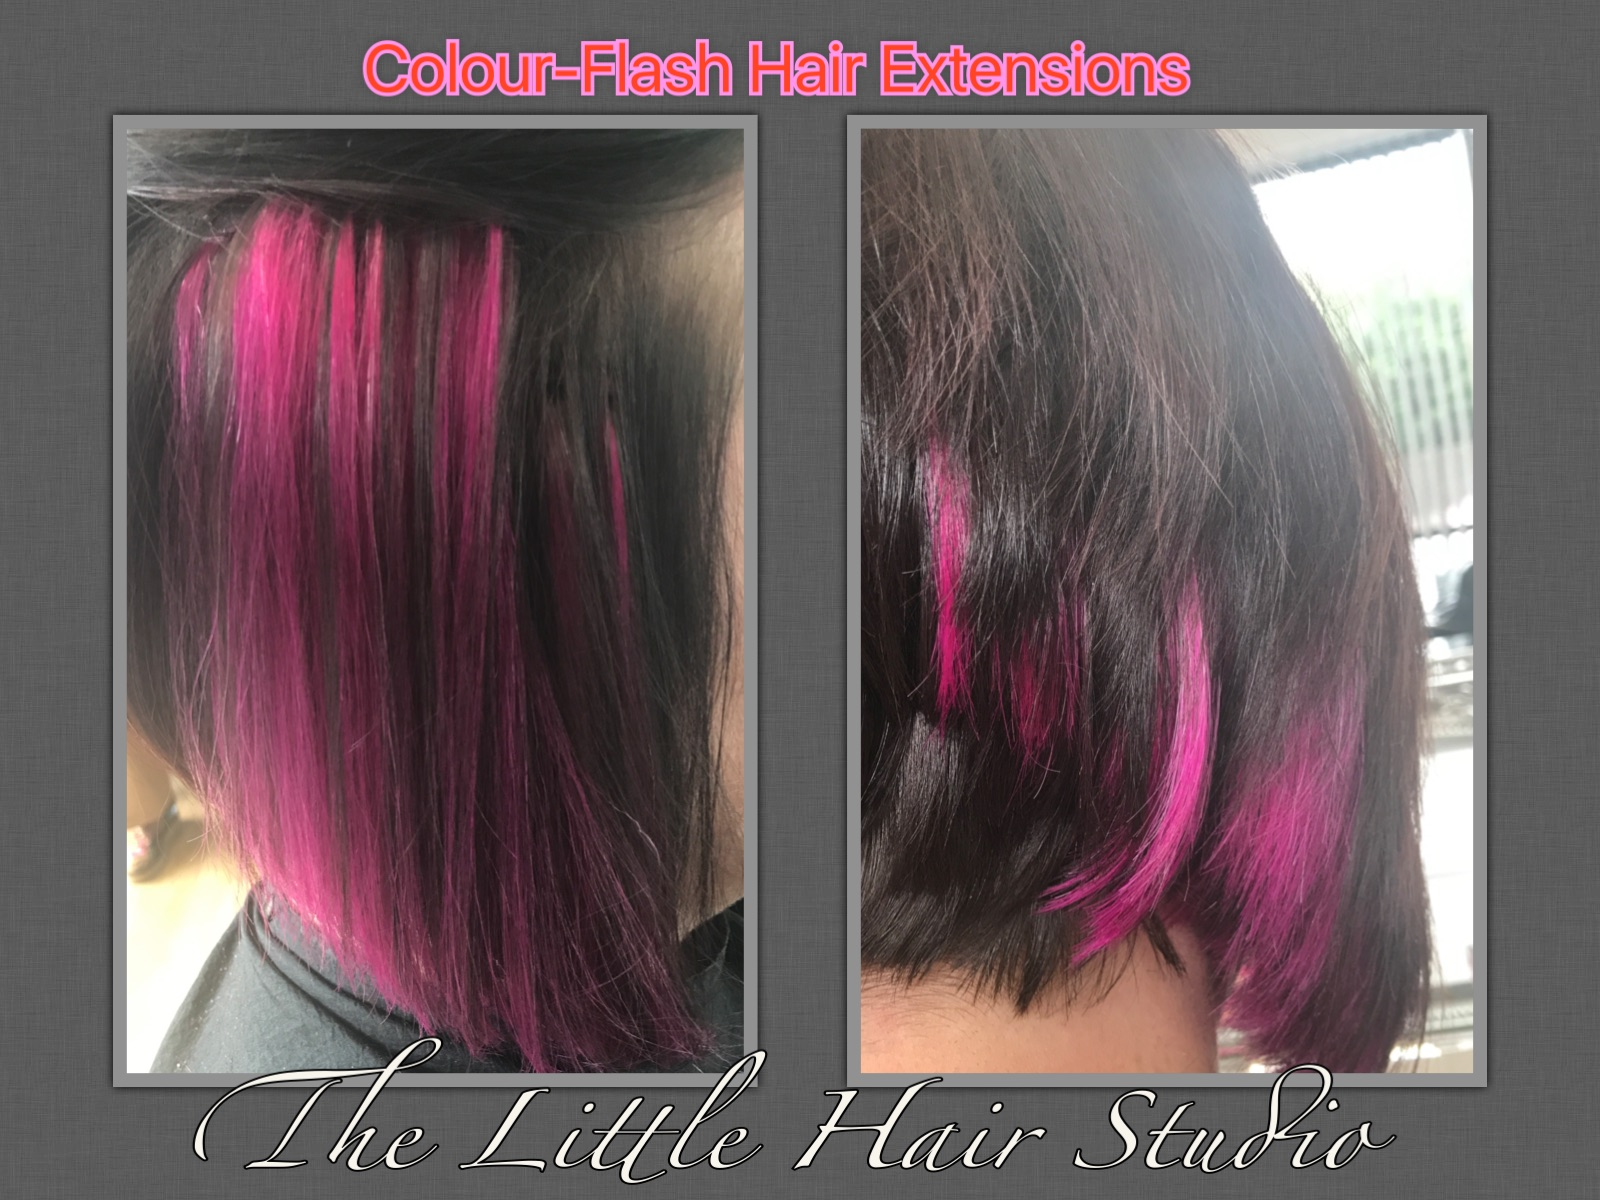 Pink colour-flash hair extensions